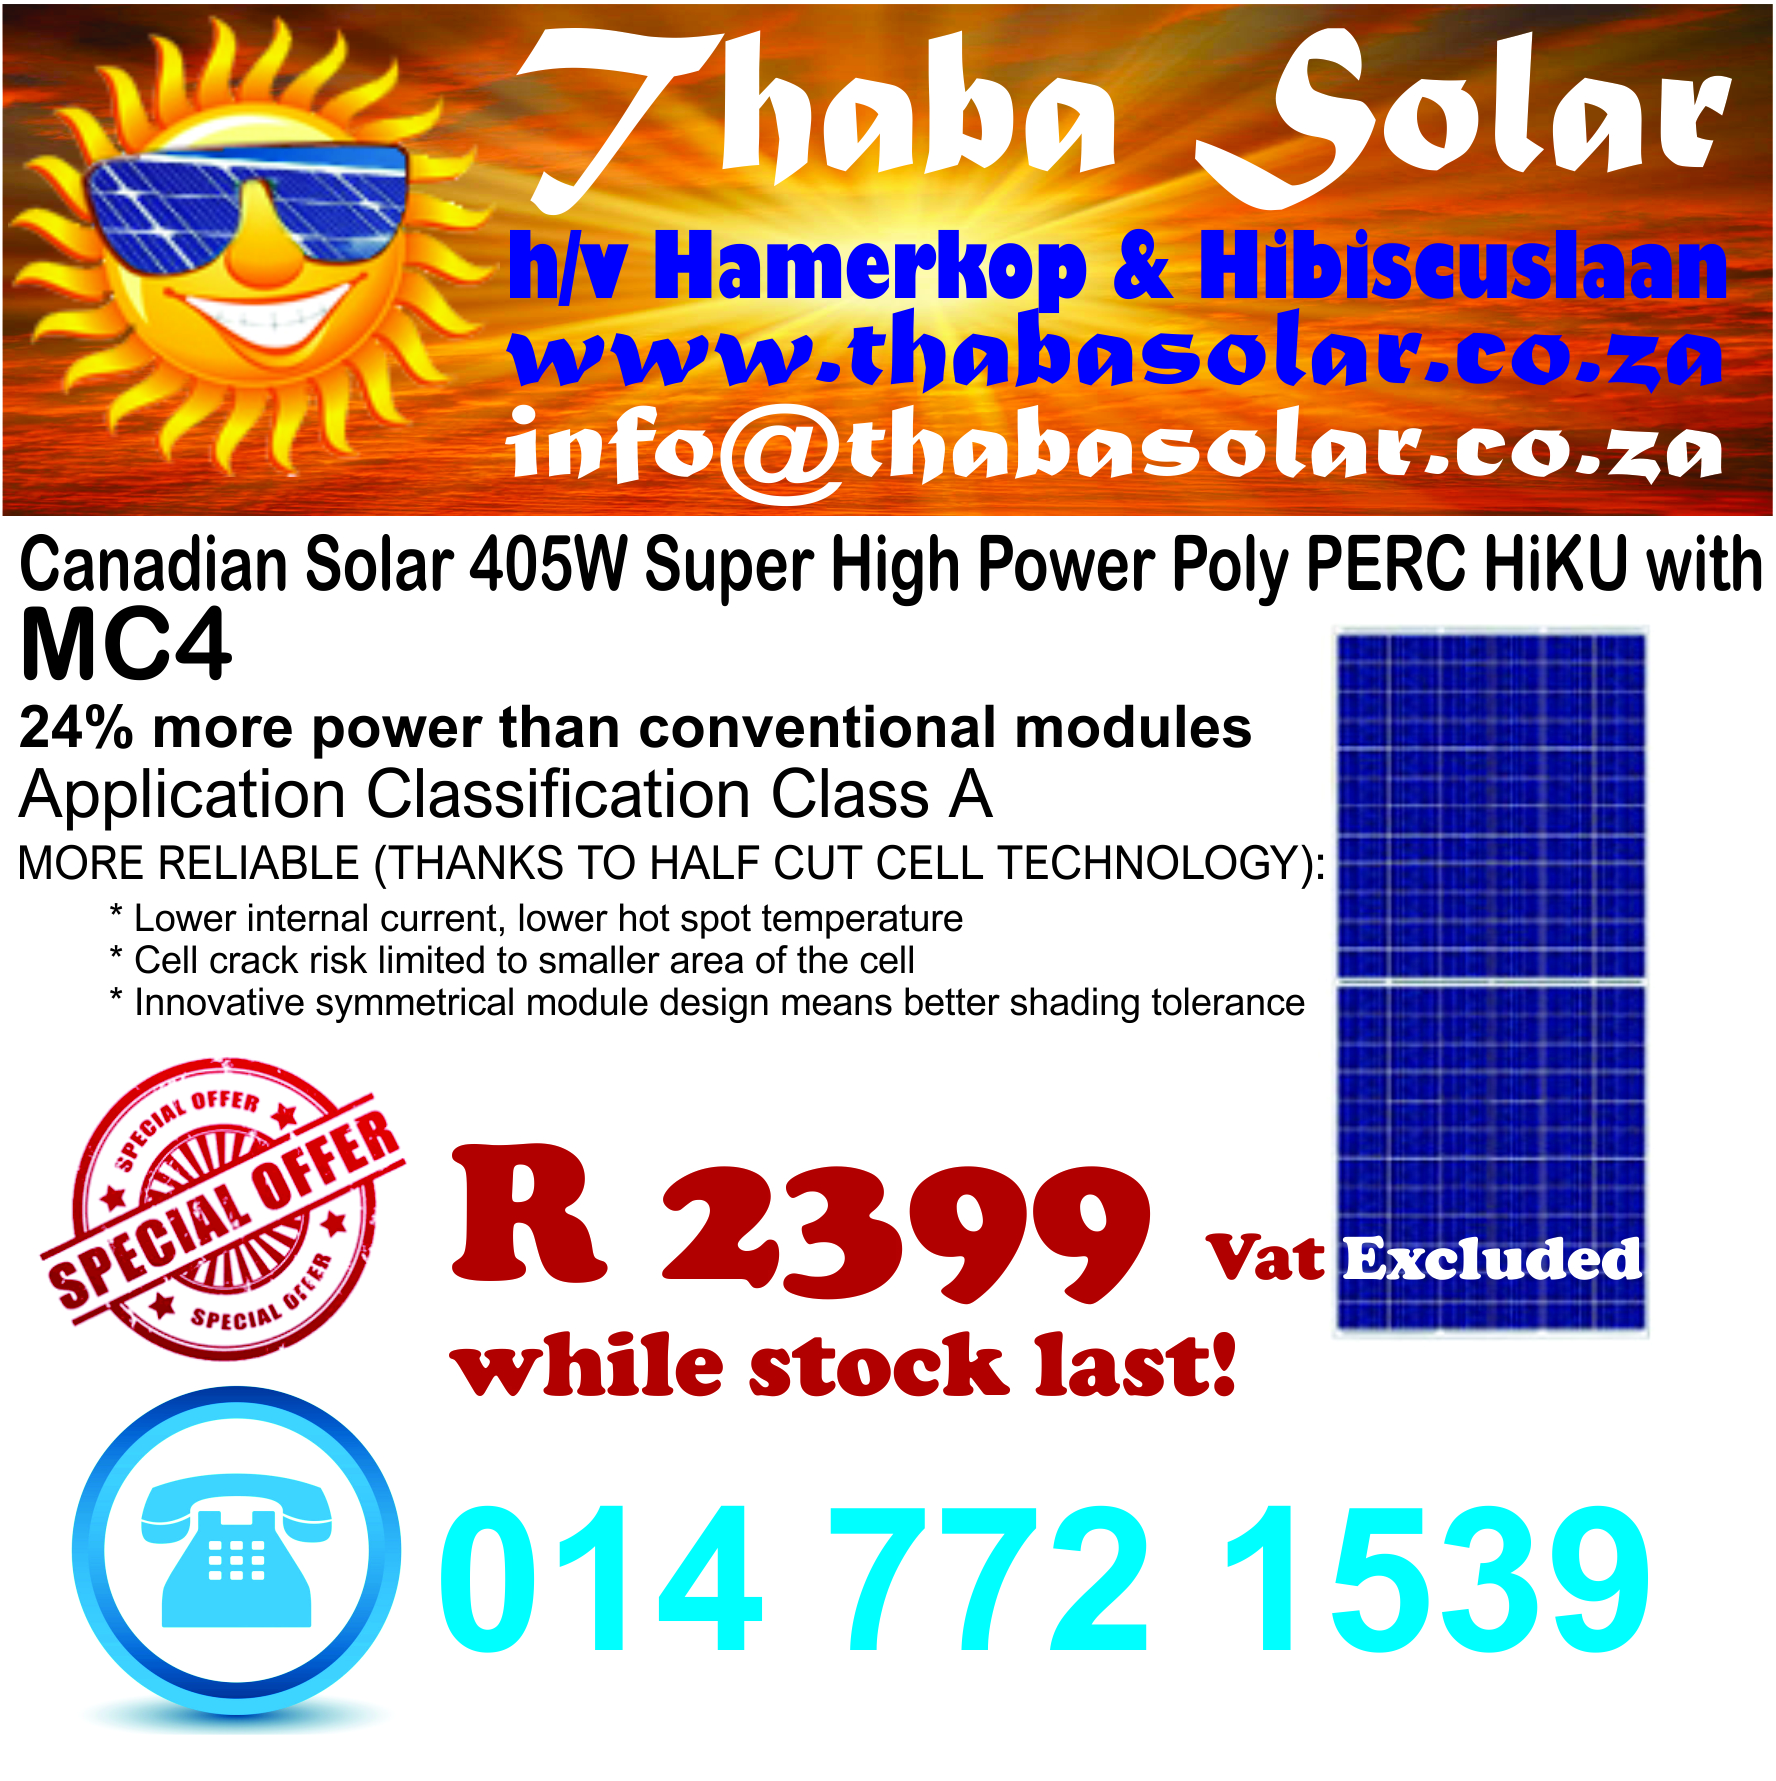 Special Offer While Stock Last!! - Thaba Solar